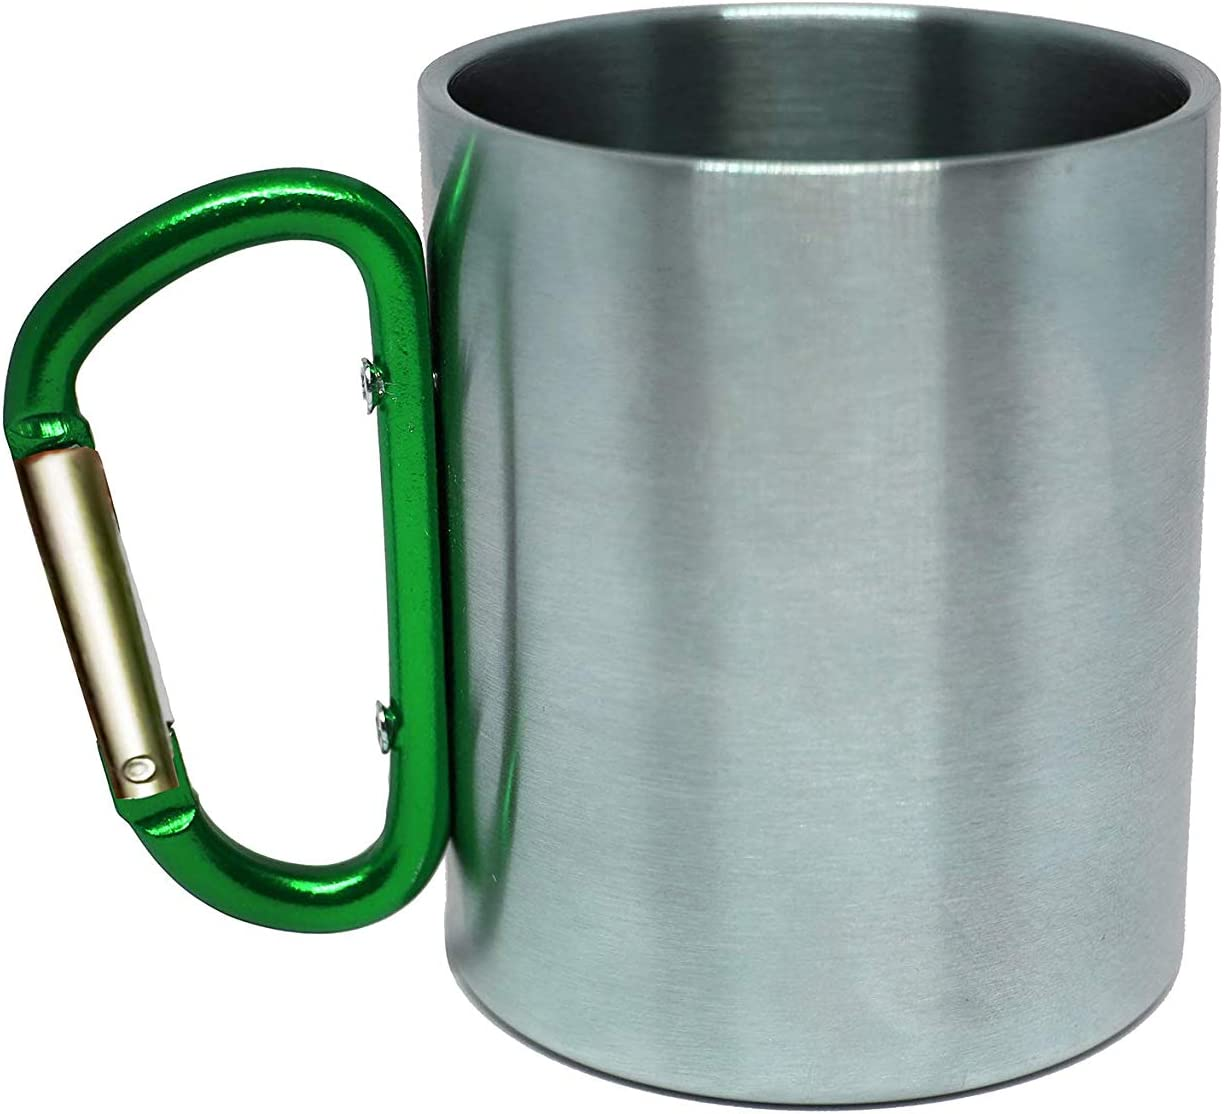 Camping and Backpacking Travel Cup 10 oz Campifize Camp Mug with Carabiner Handle Stainless Steel Hiking